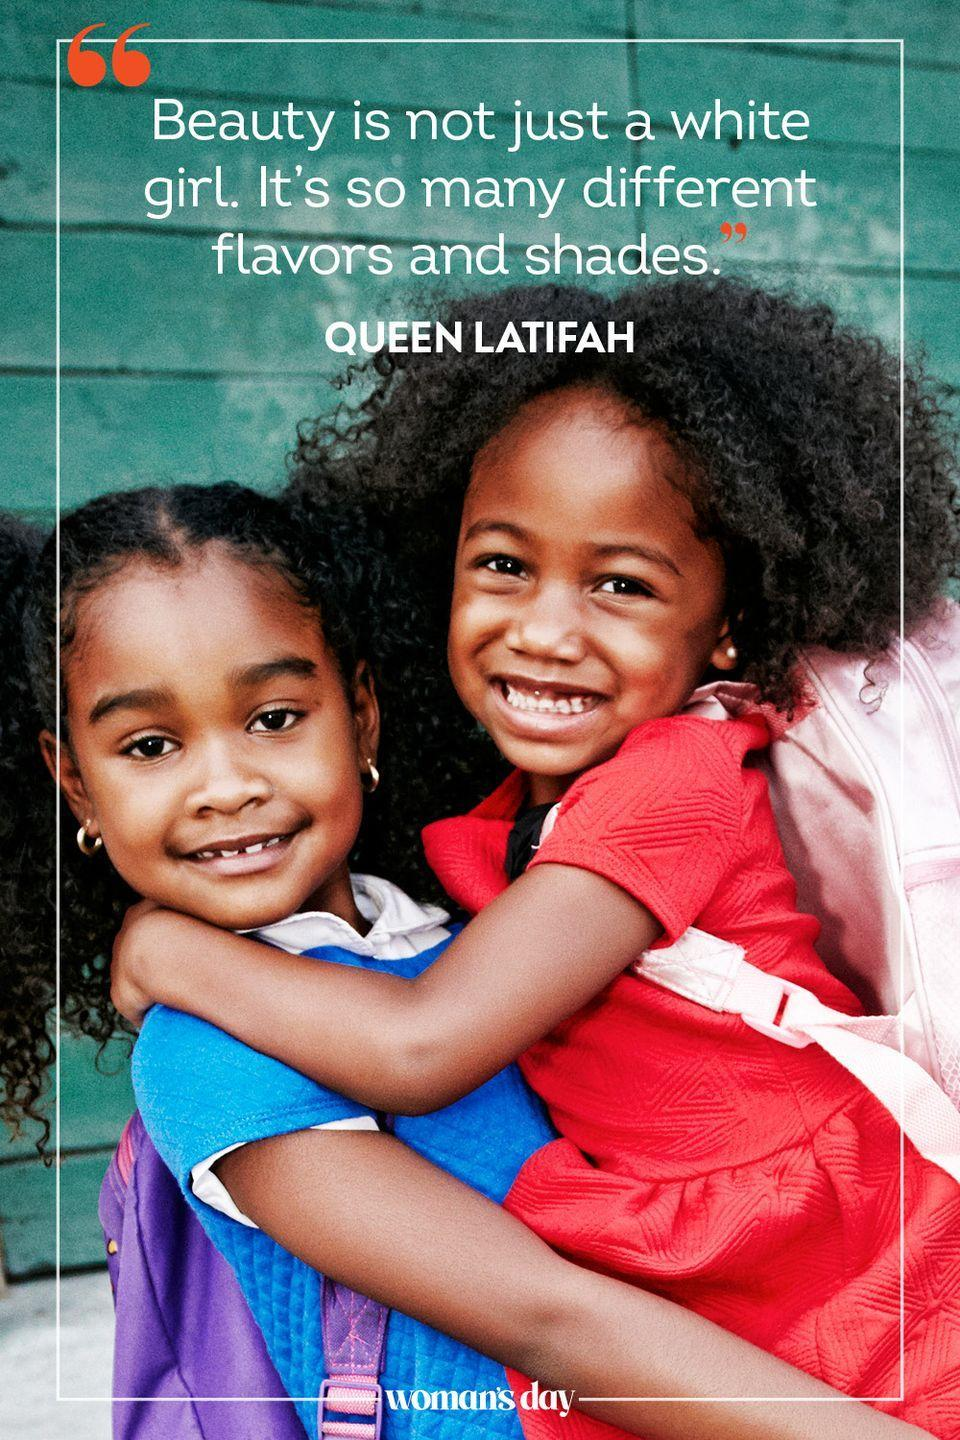 """<p>""""Beauty is not just a white girl. It's so many different flavors and shades."""" — Queen Latifah</p>"""